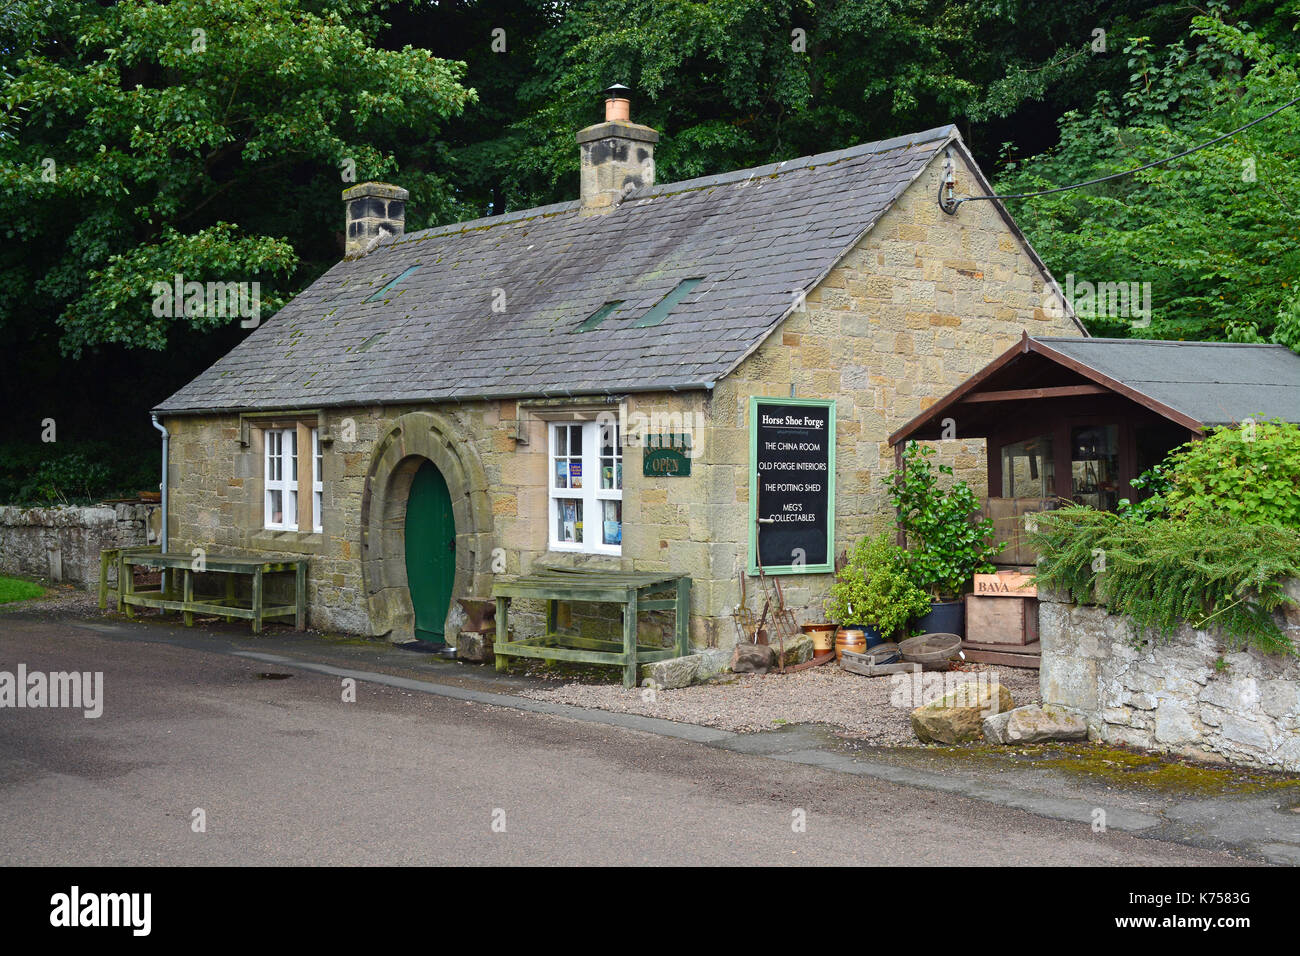 Horseshoe Forge, Ford, Northumberland - Stock Image